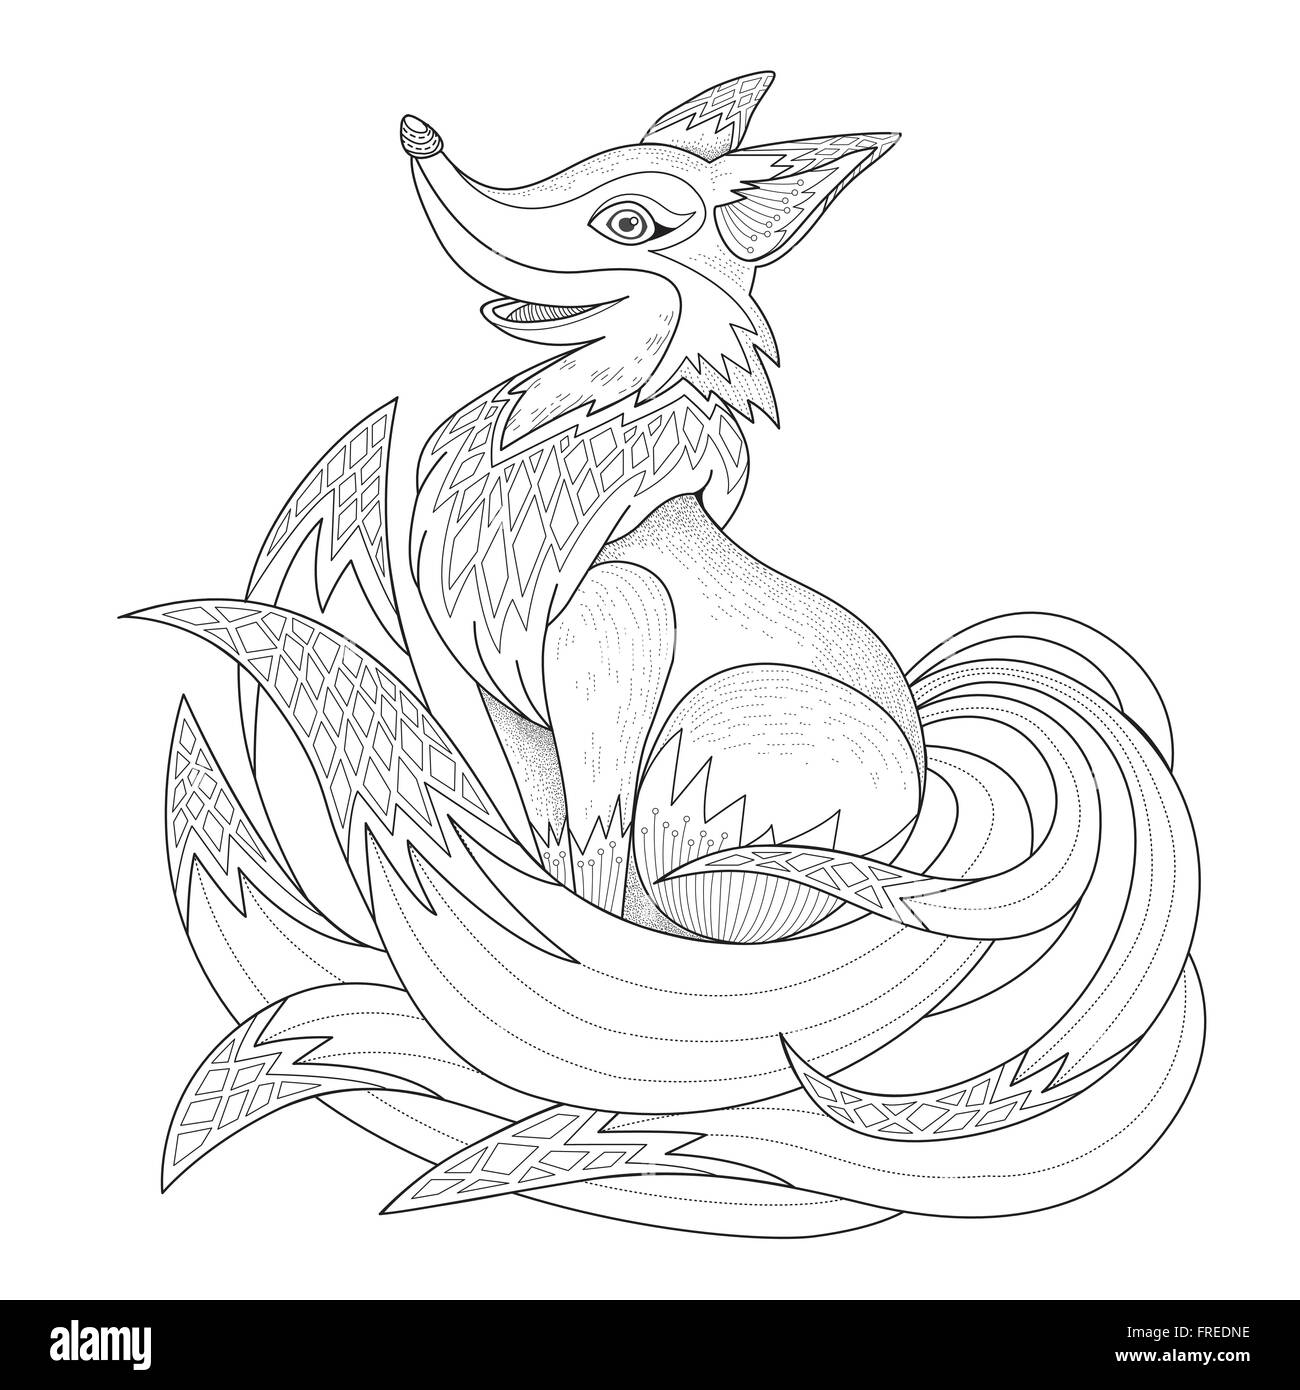 Tails Fox Stock Vector Images - Alamy